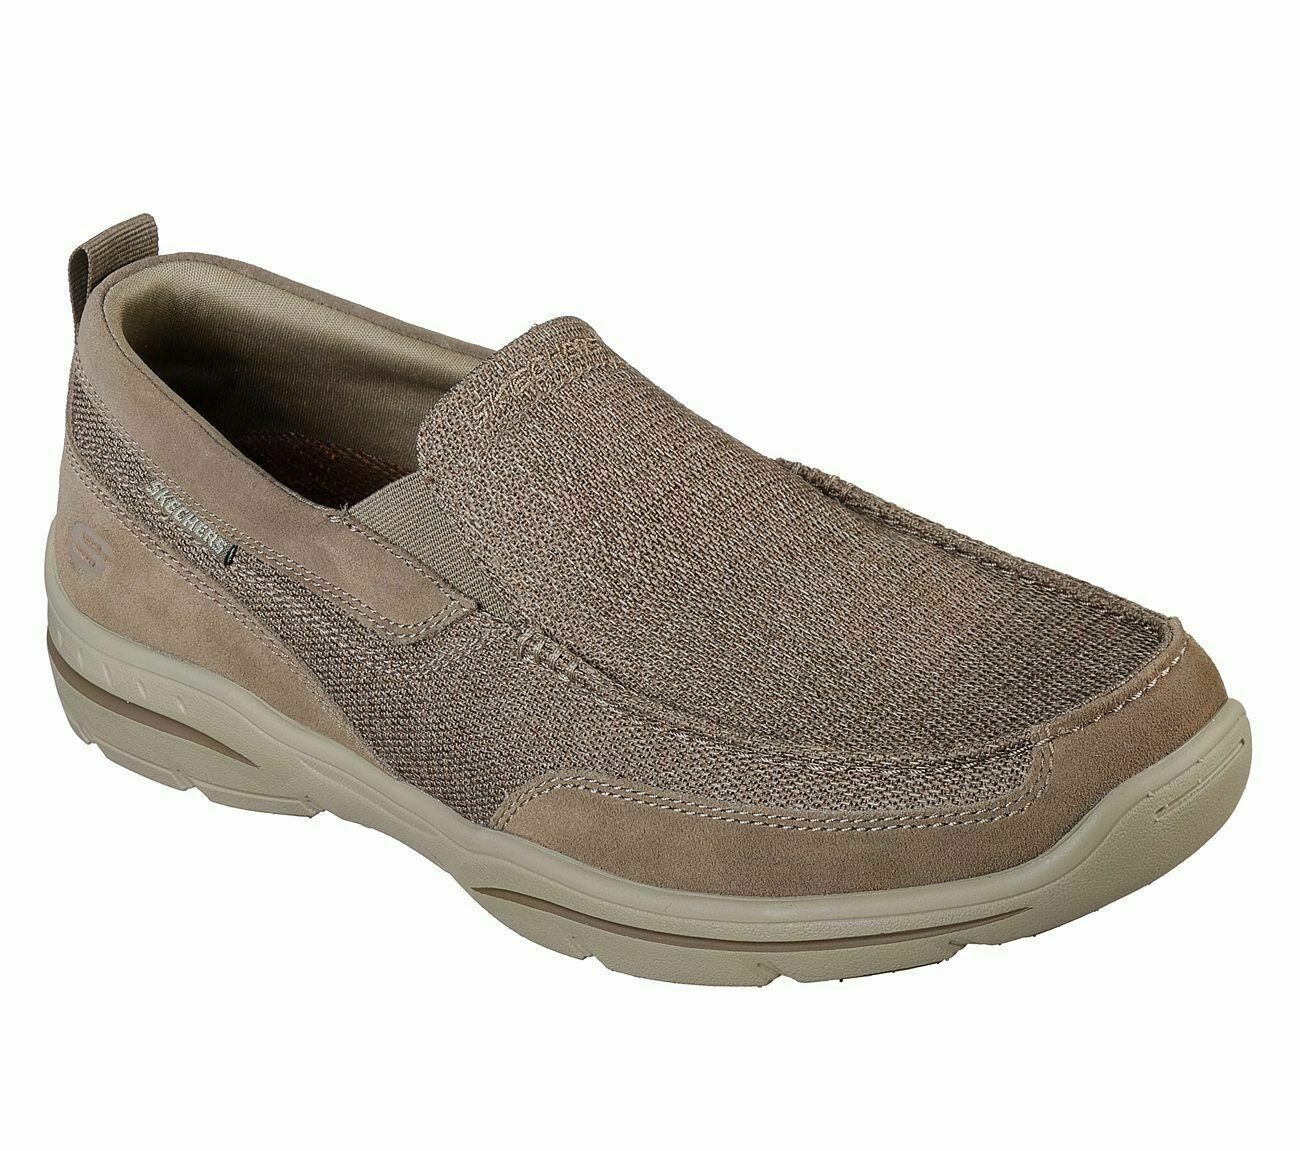 Taupe Men's Shoes Skechers Memory Foam Air Slip On Soft Mesh Loafer Casual 65578